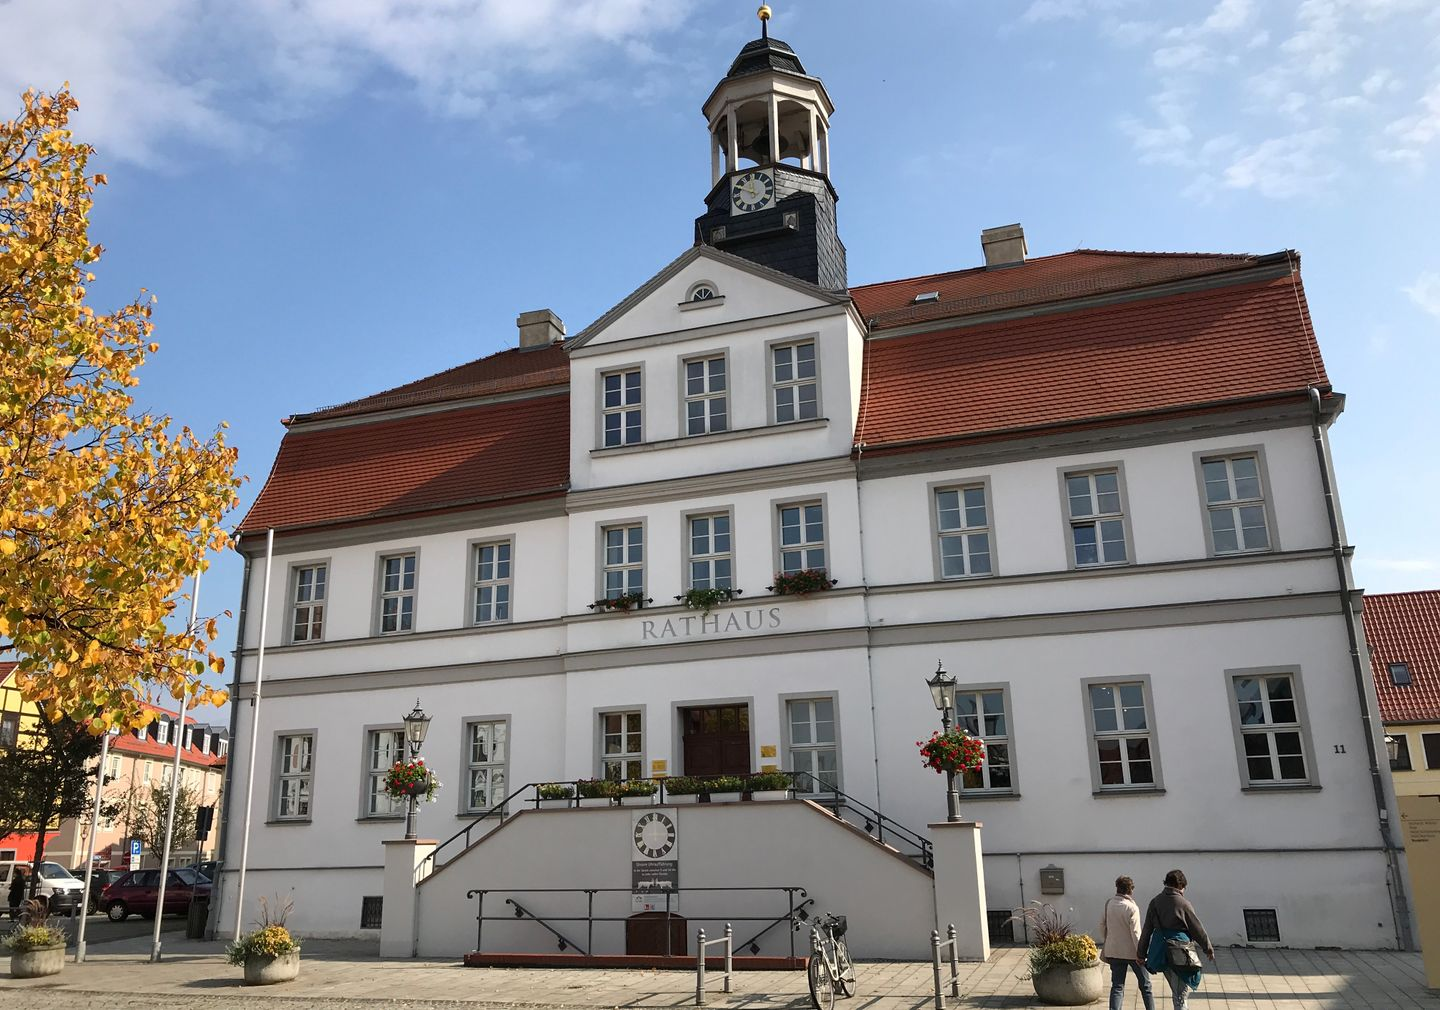 Bad Düben town hall